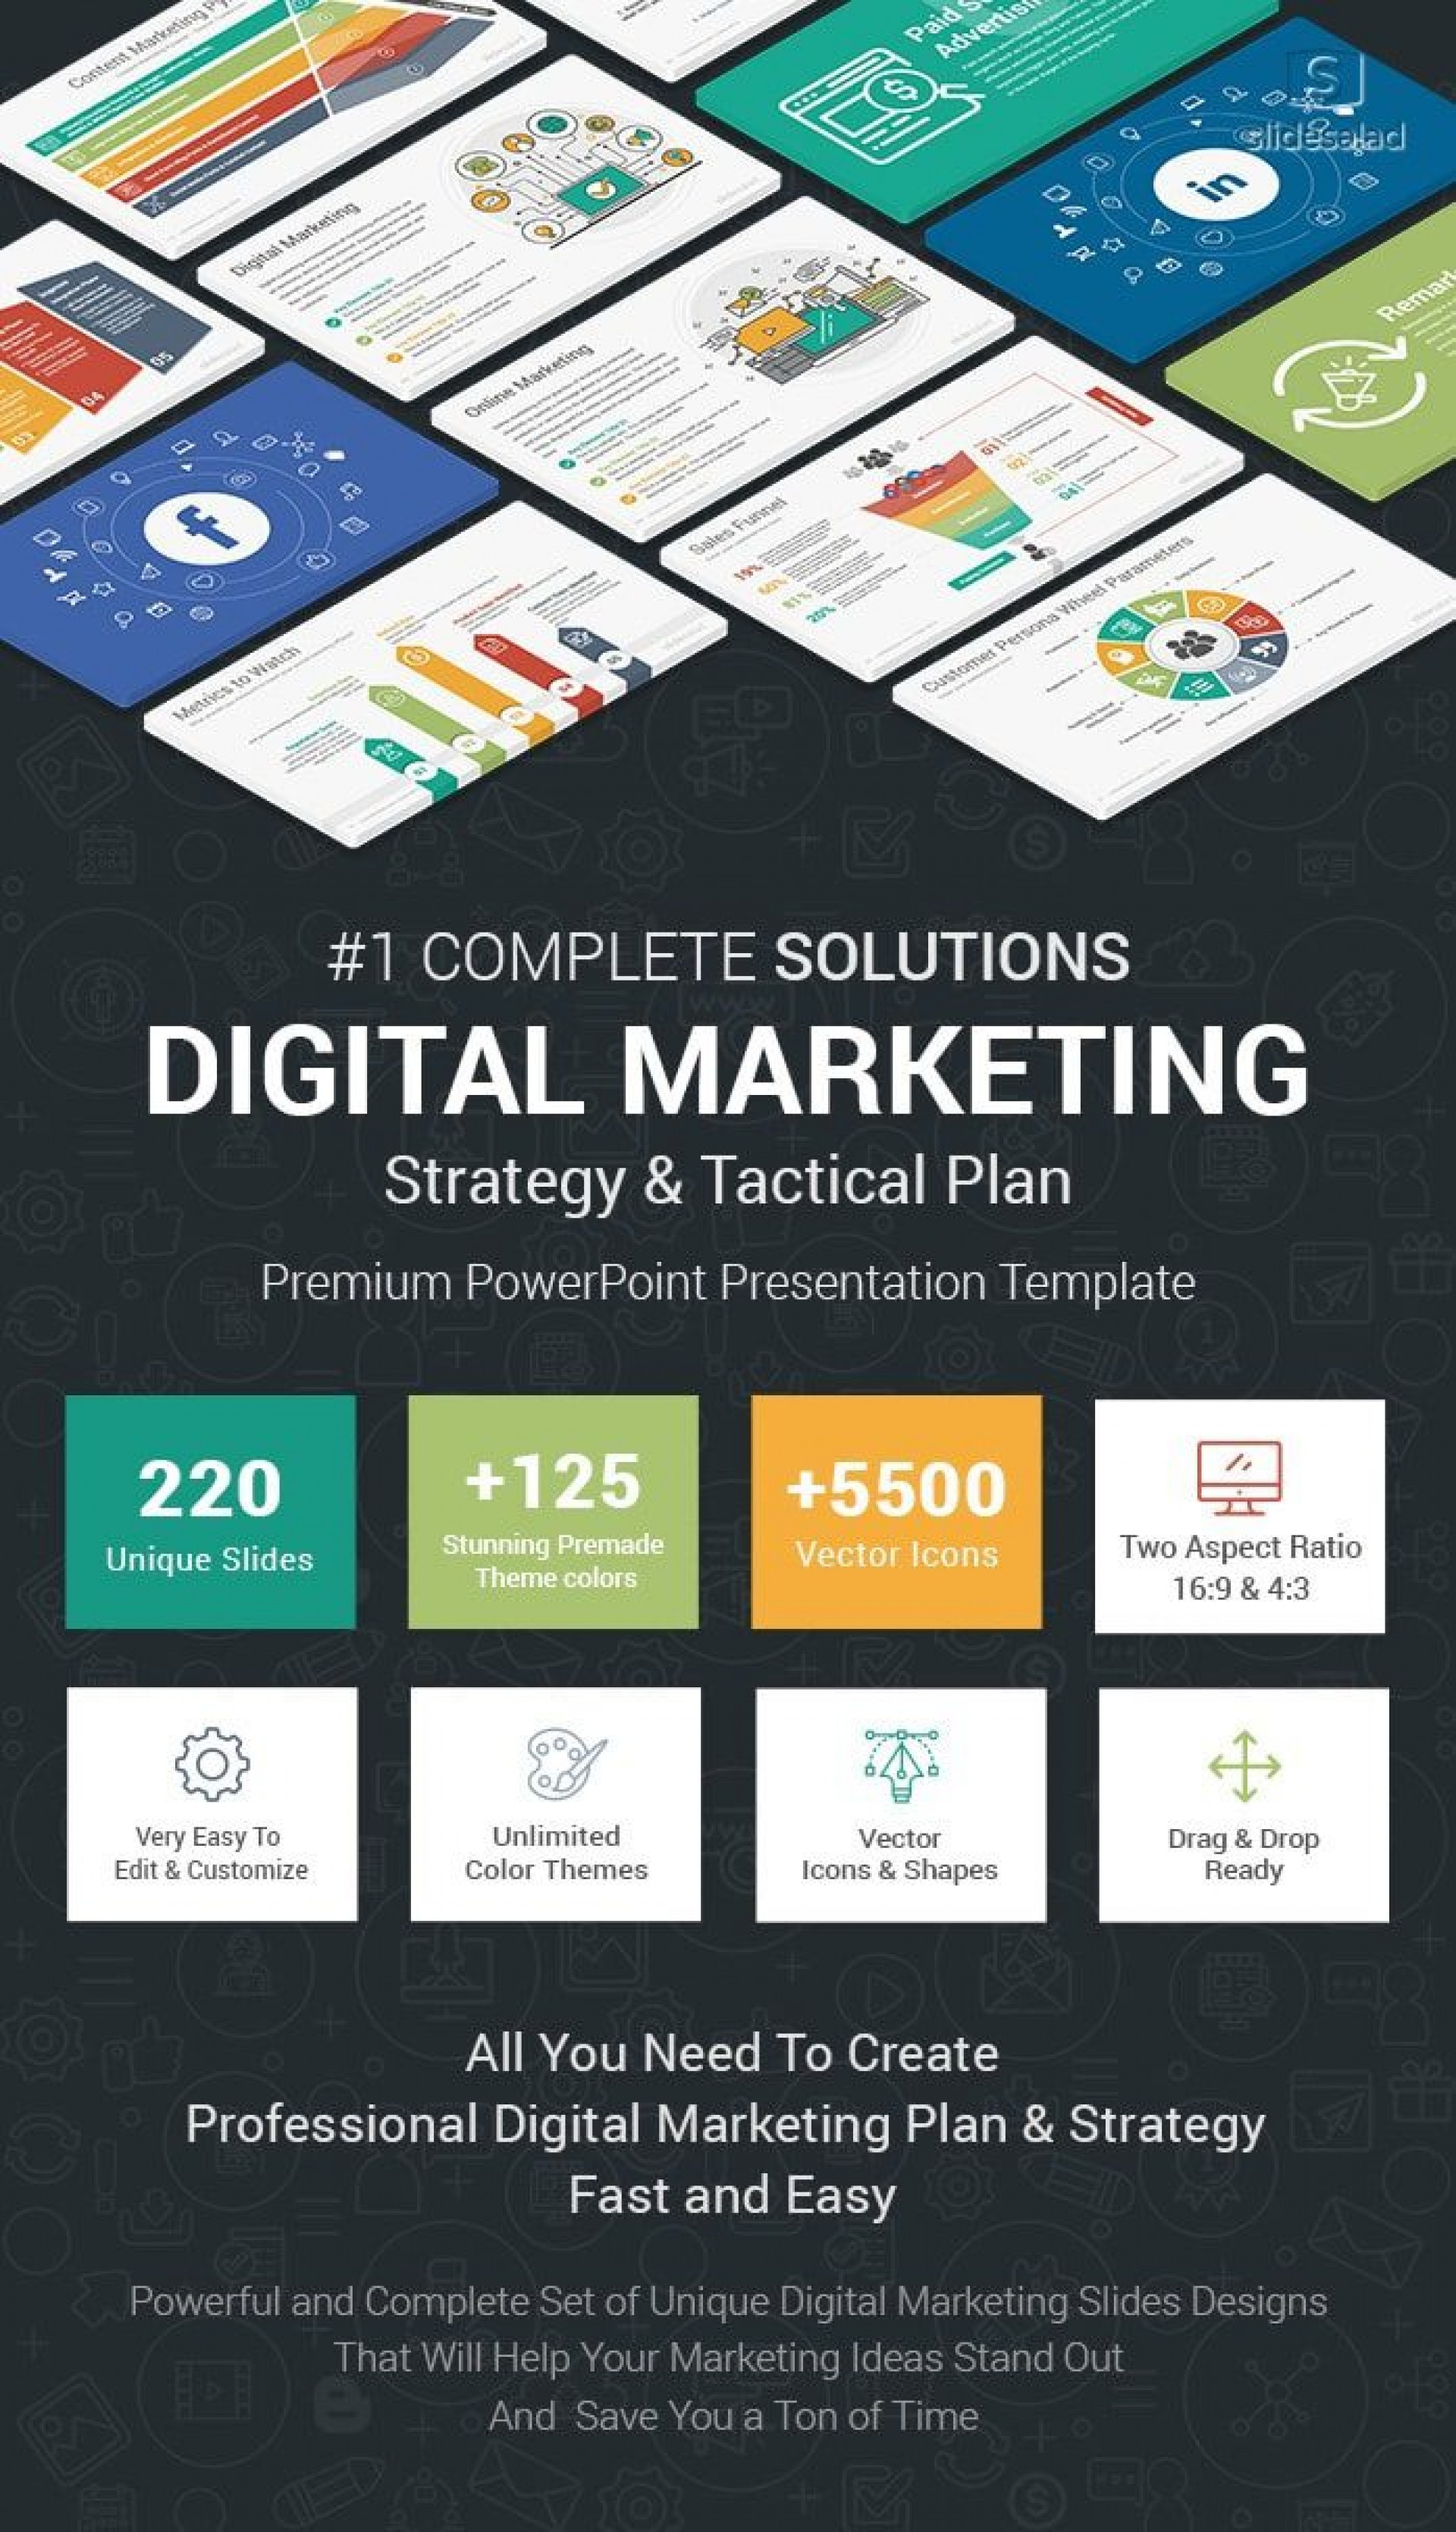 004 Fearsome Free Digital Marketing Plan Template Ppt Design 1920